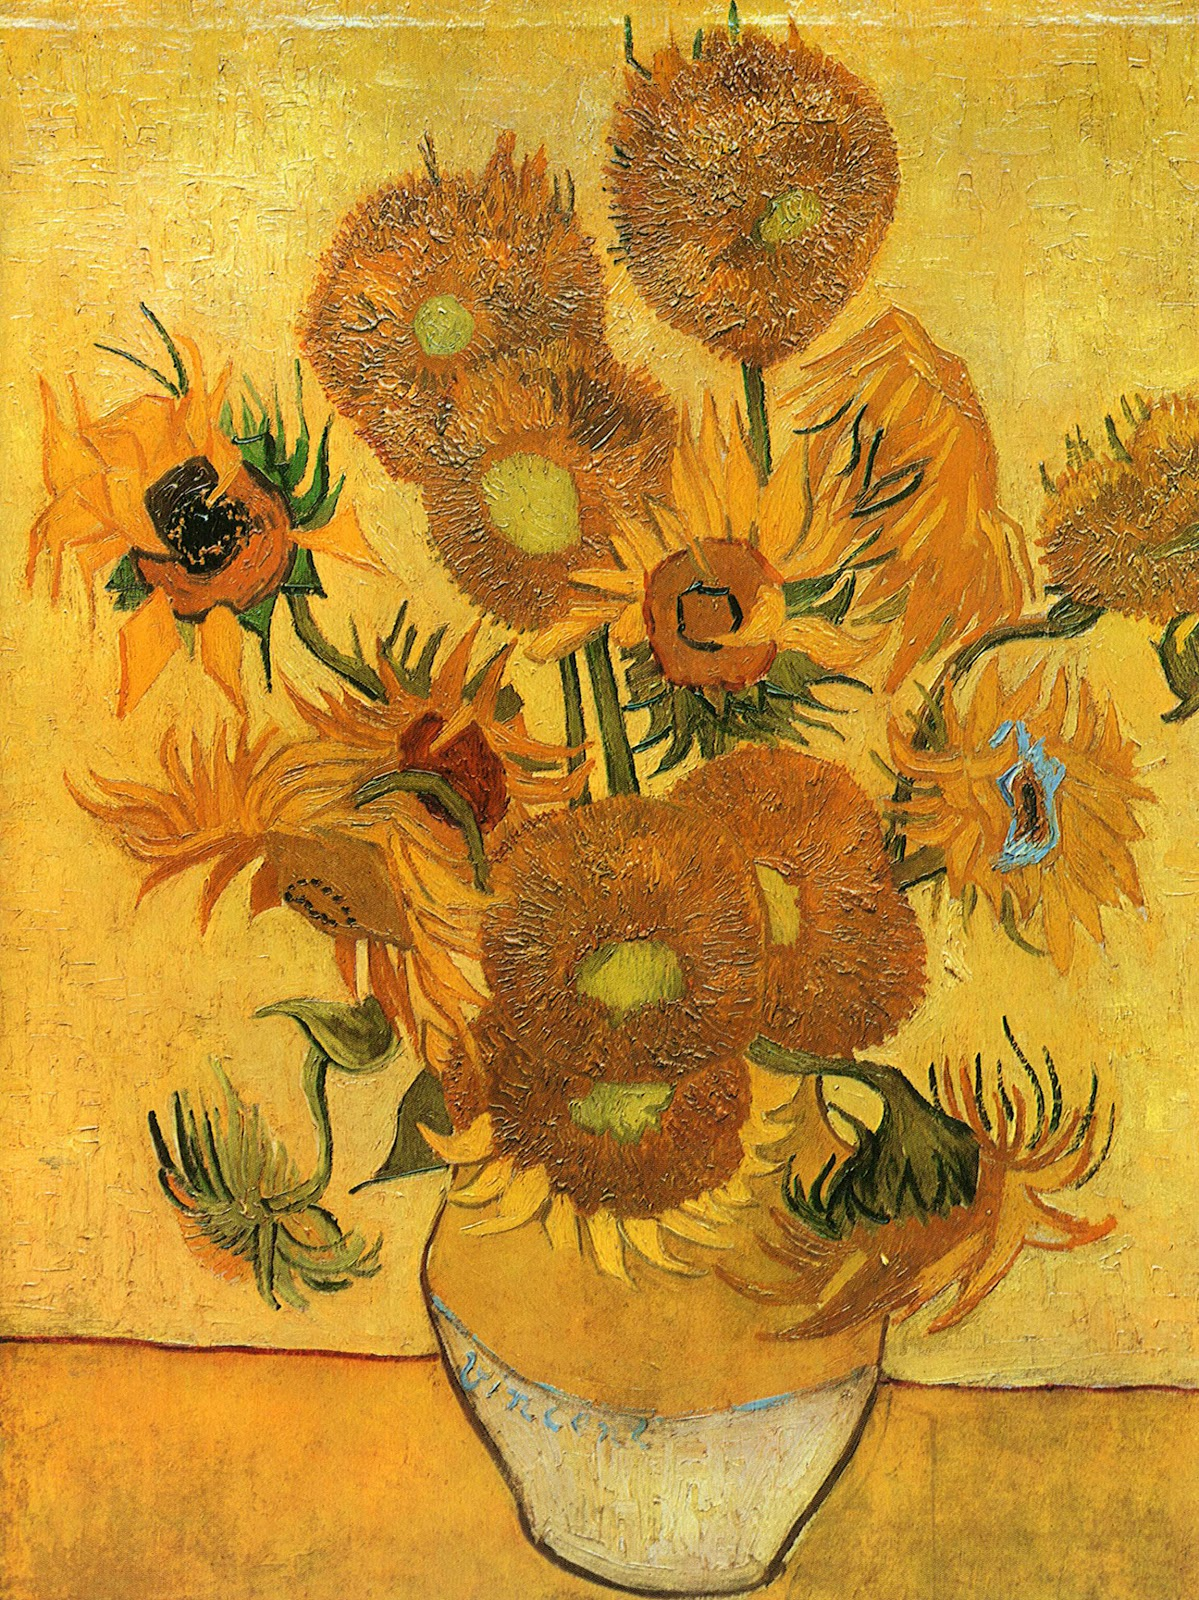 art \u0026 artists & ART \u0026 ARTISTS: Vincent van Gogh - Flowers part 2